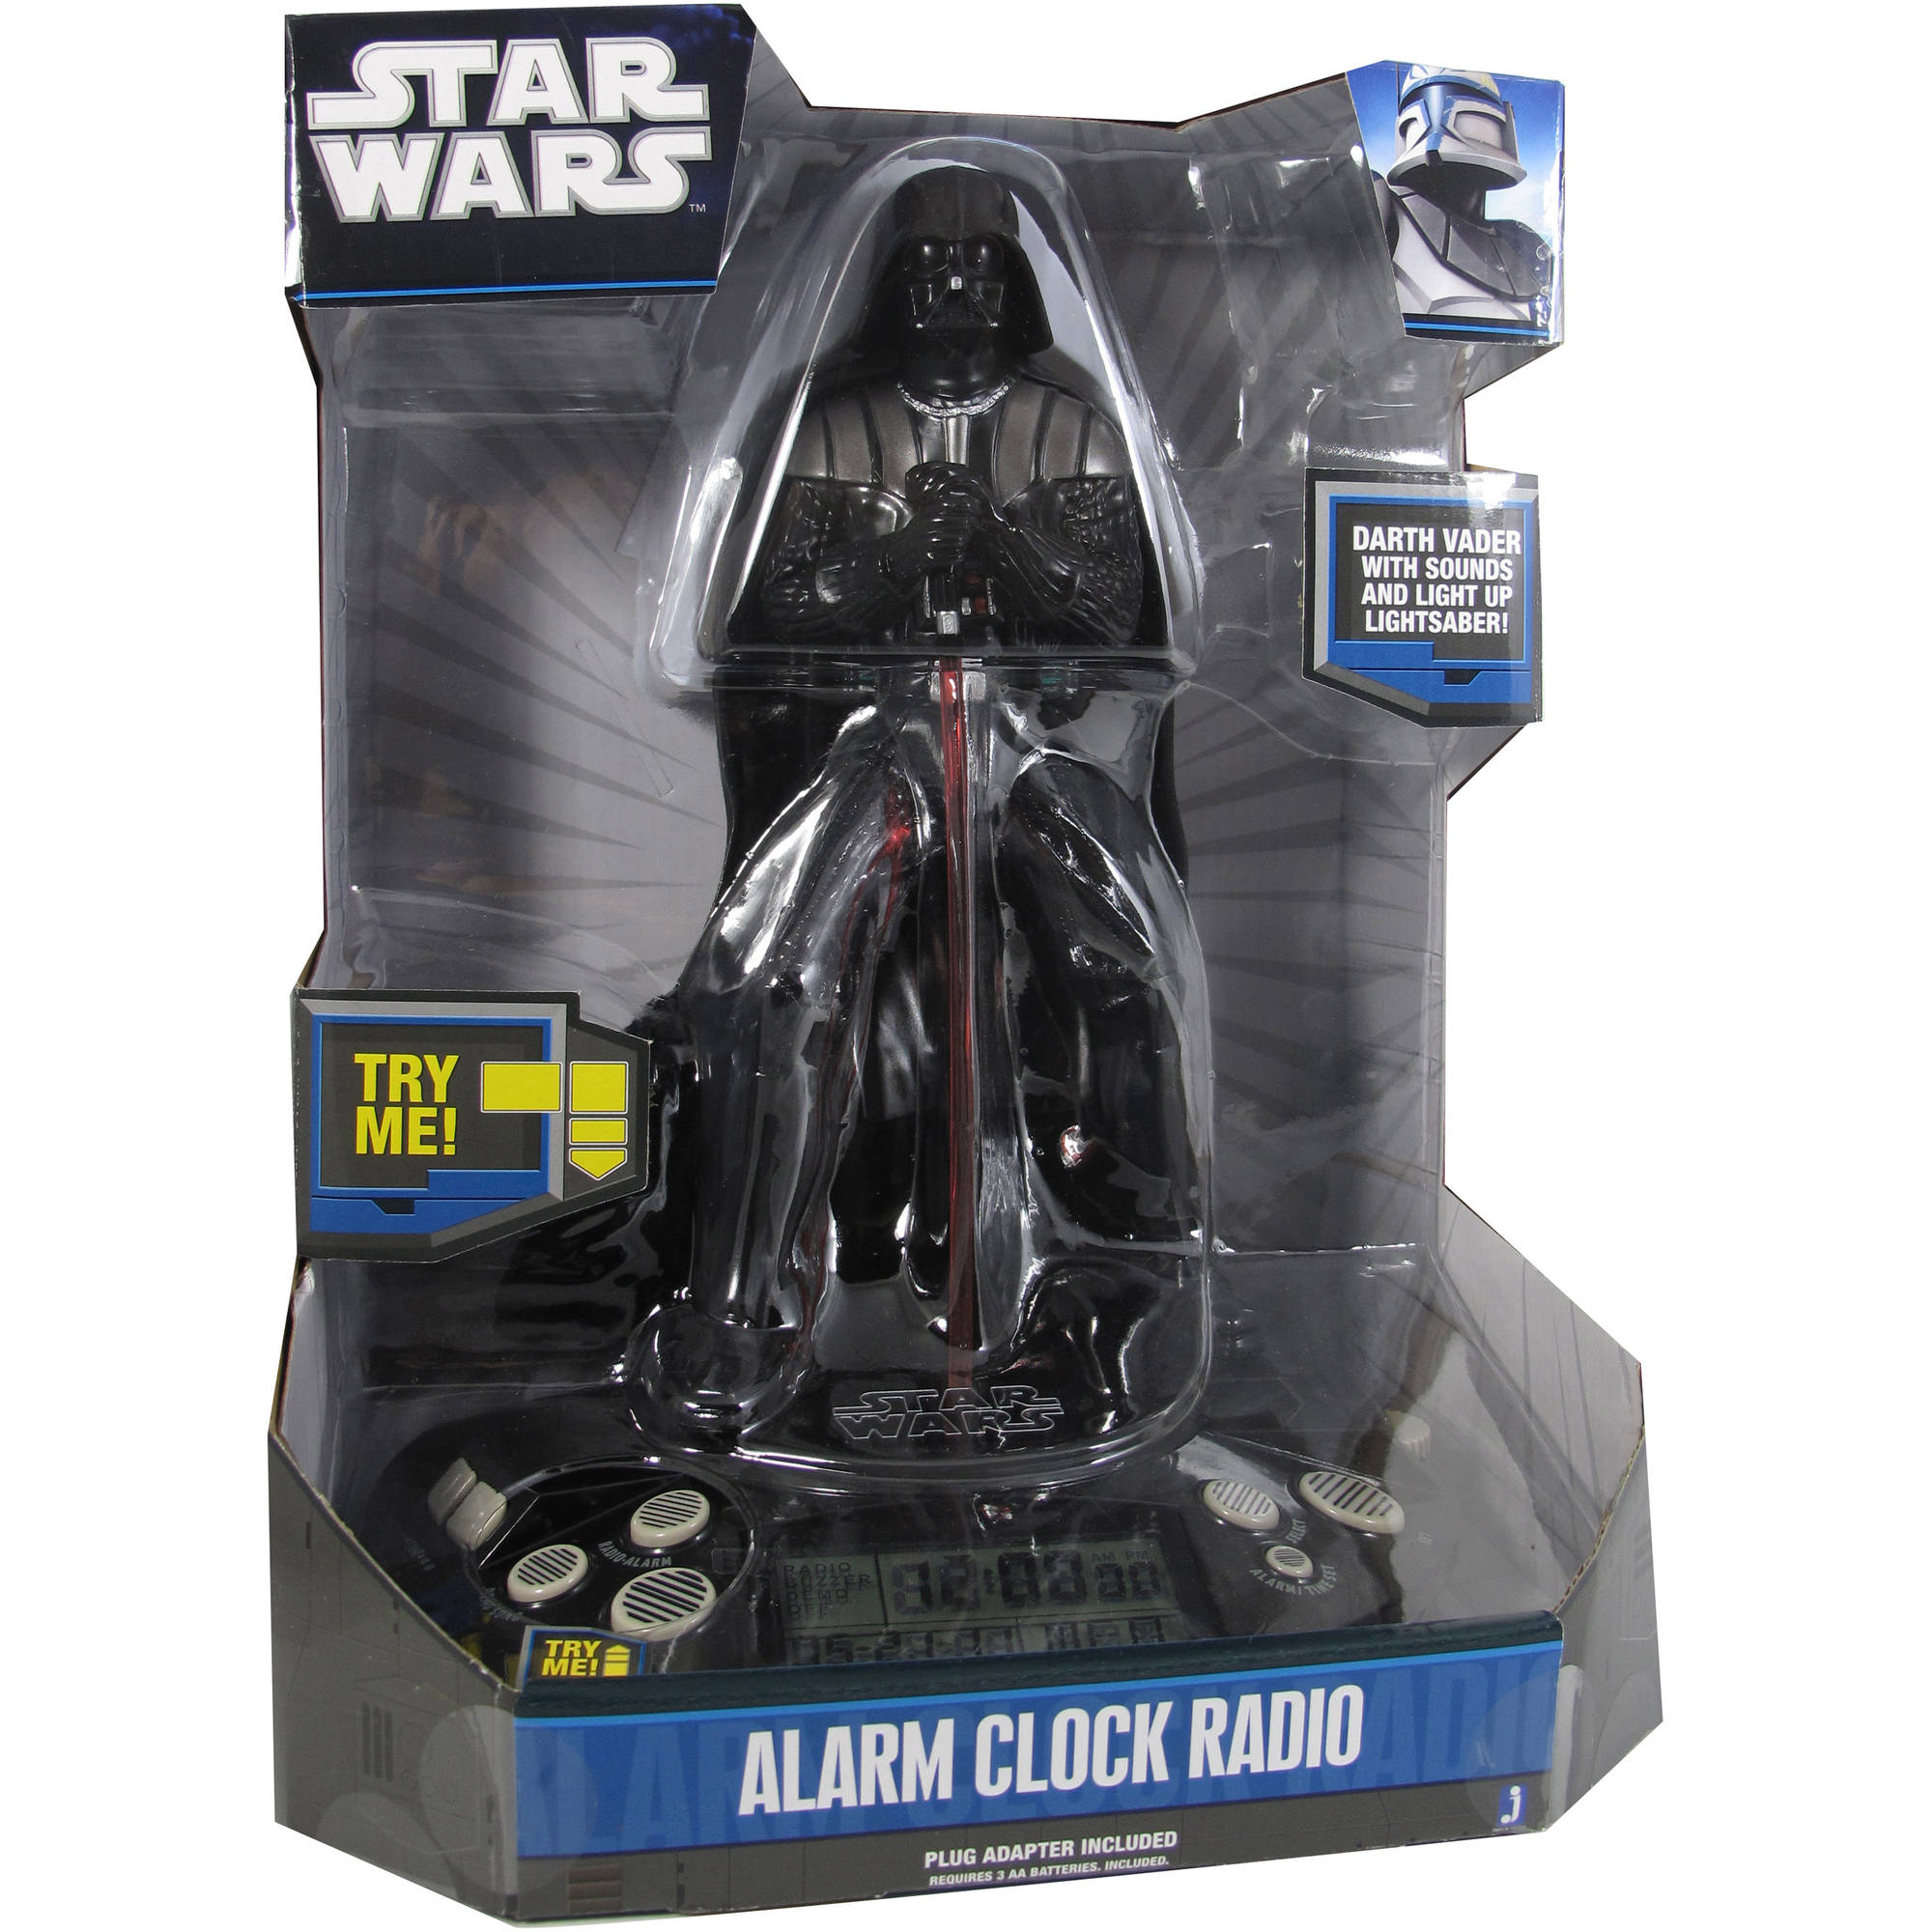 Star Wars Alarm Clock, Darth Vader